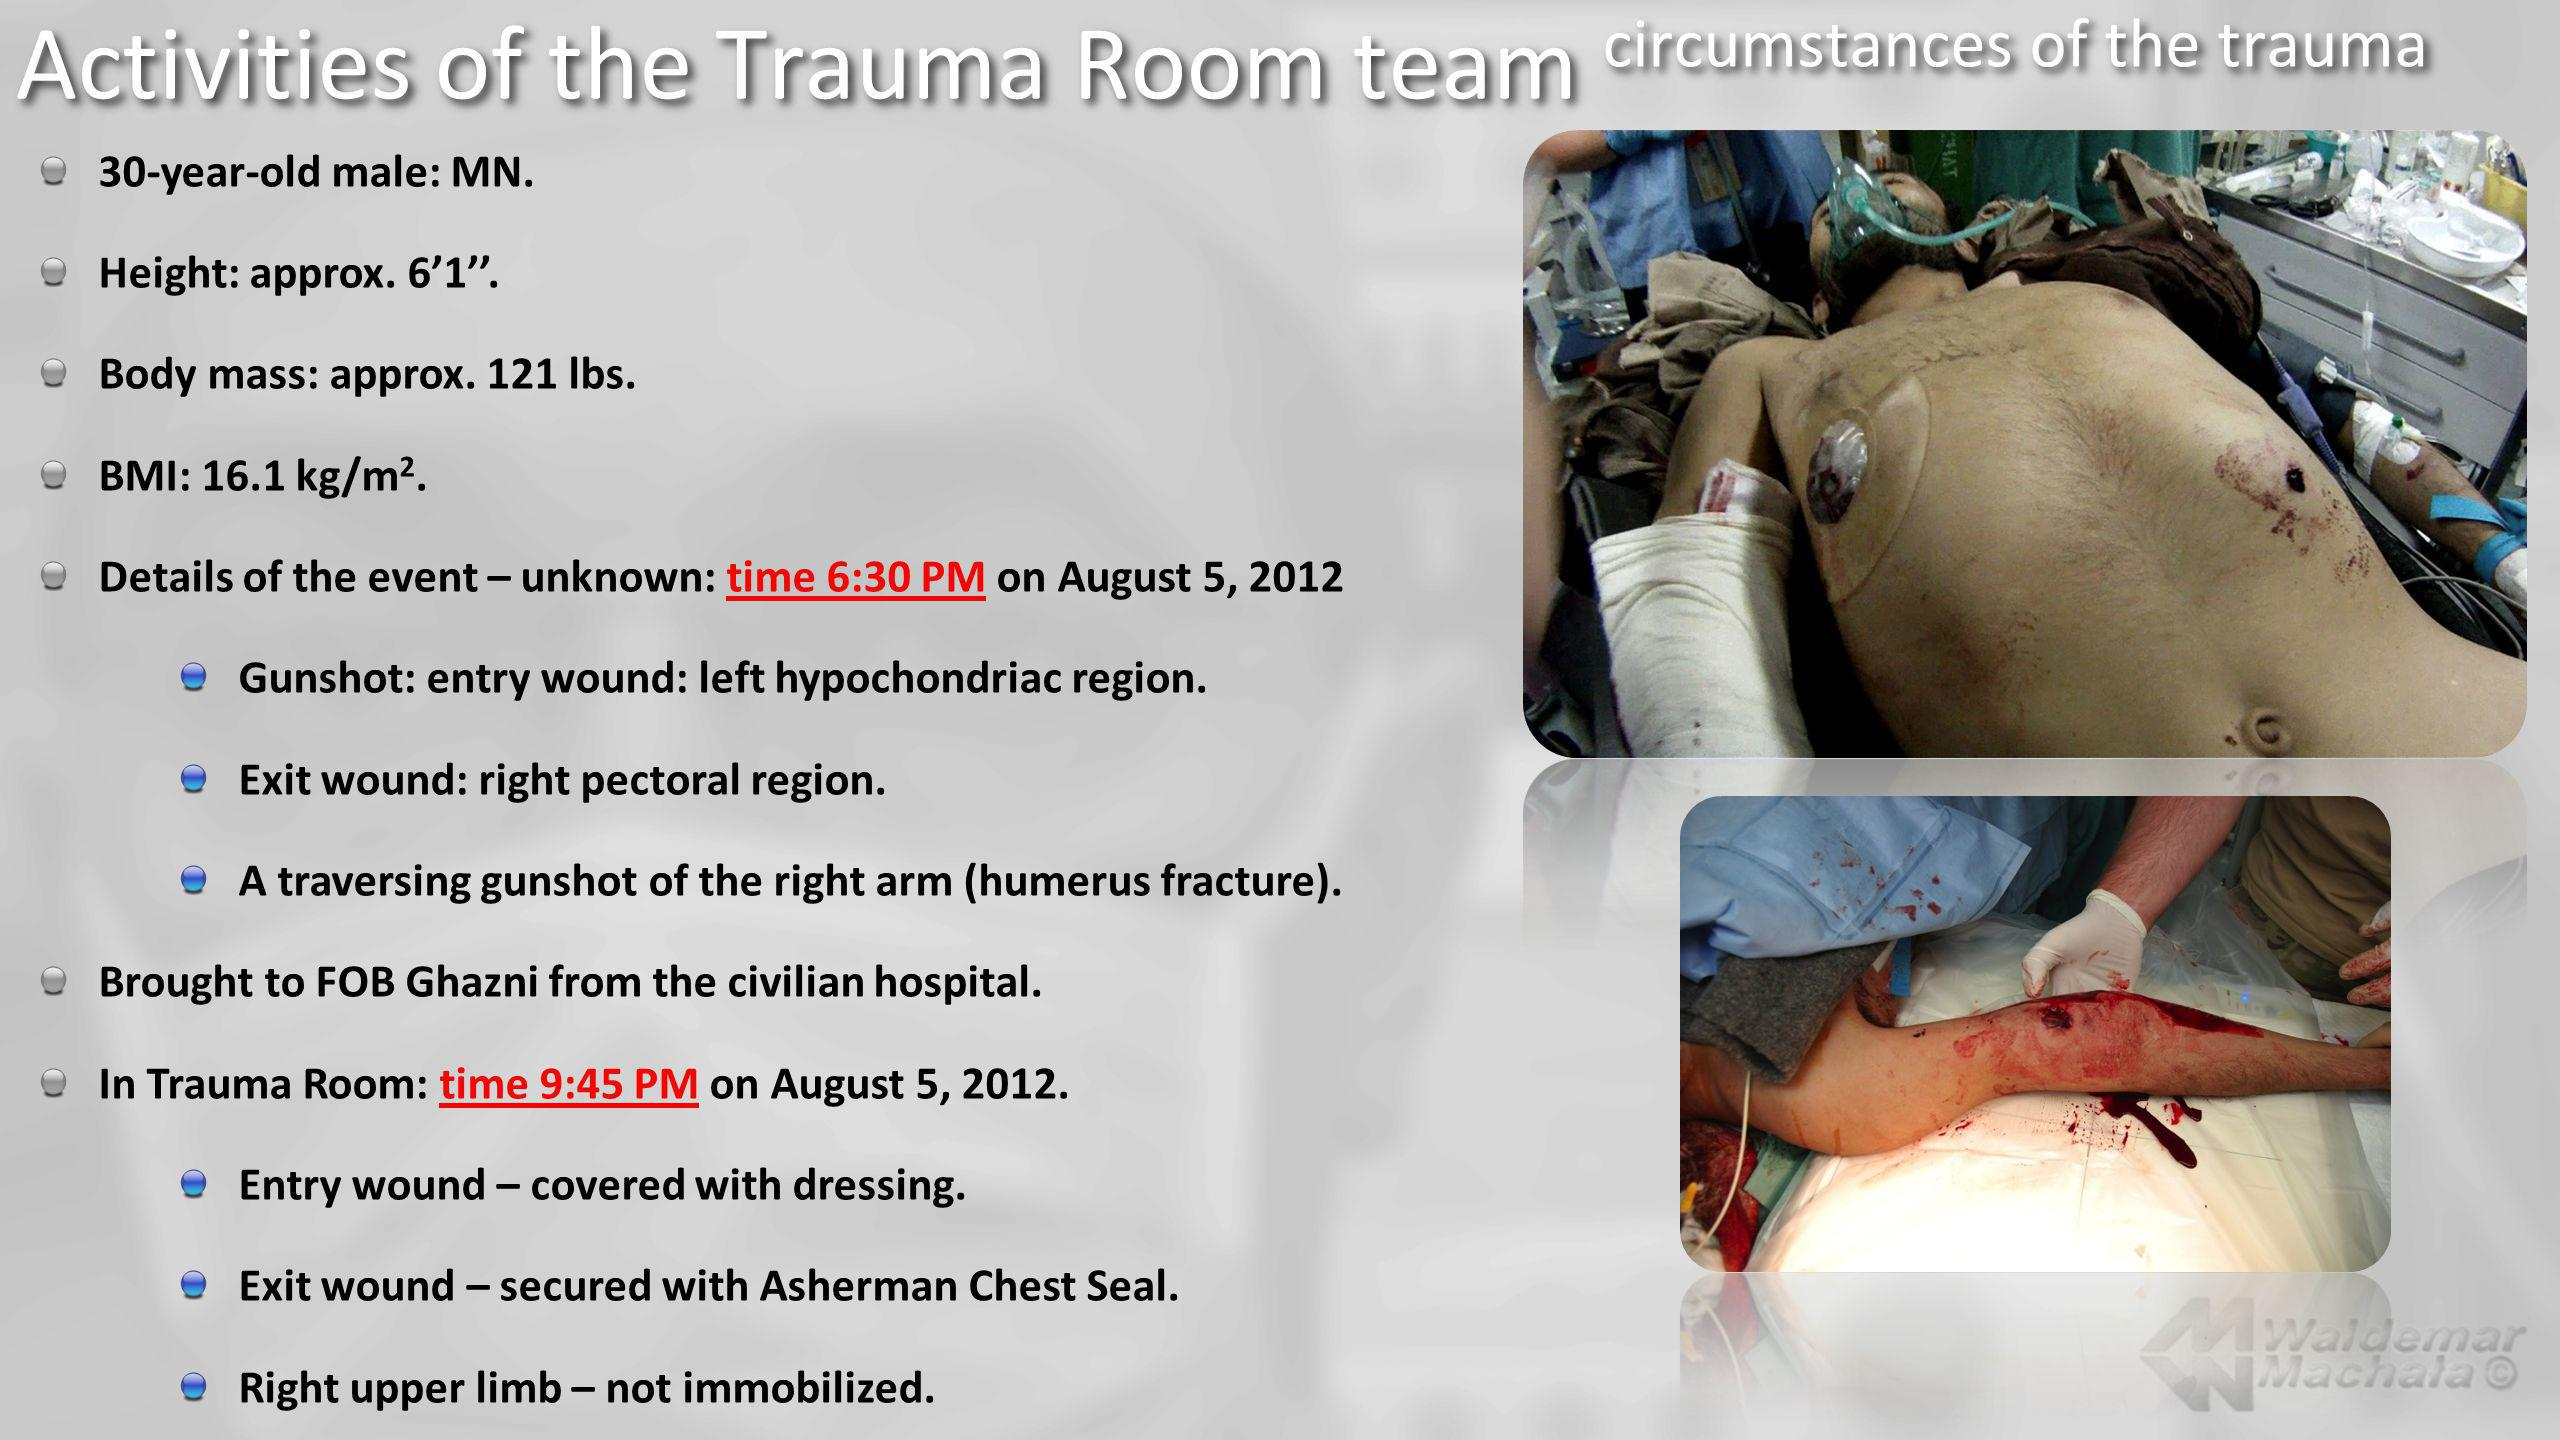 Activities of the Trauma Room team circumstances of the trauma 30-year-old male: MN. Height: approx. 61. Body mass: approx. 121 lbs. BMI: 16.1 kg/m 2.